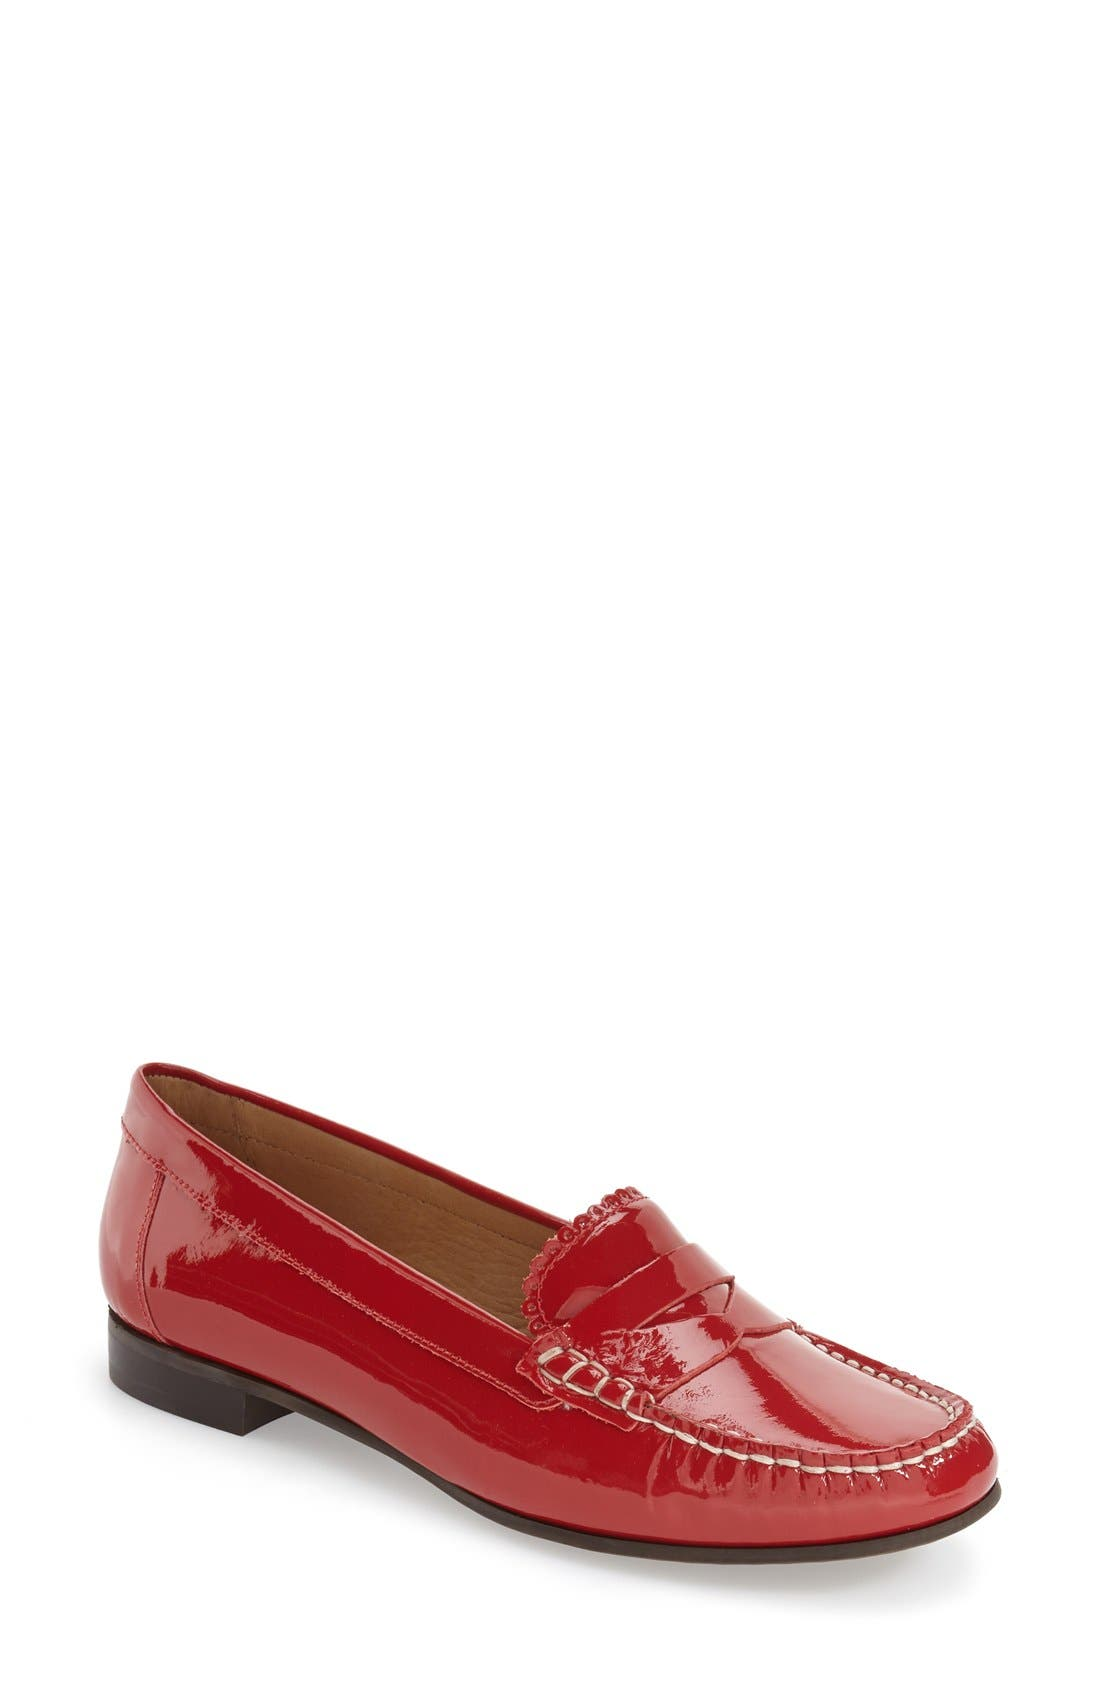 Main Image - Jack Rogers 'Quinn' Leather Loafer (Women)